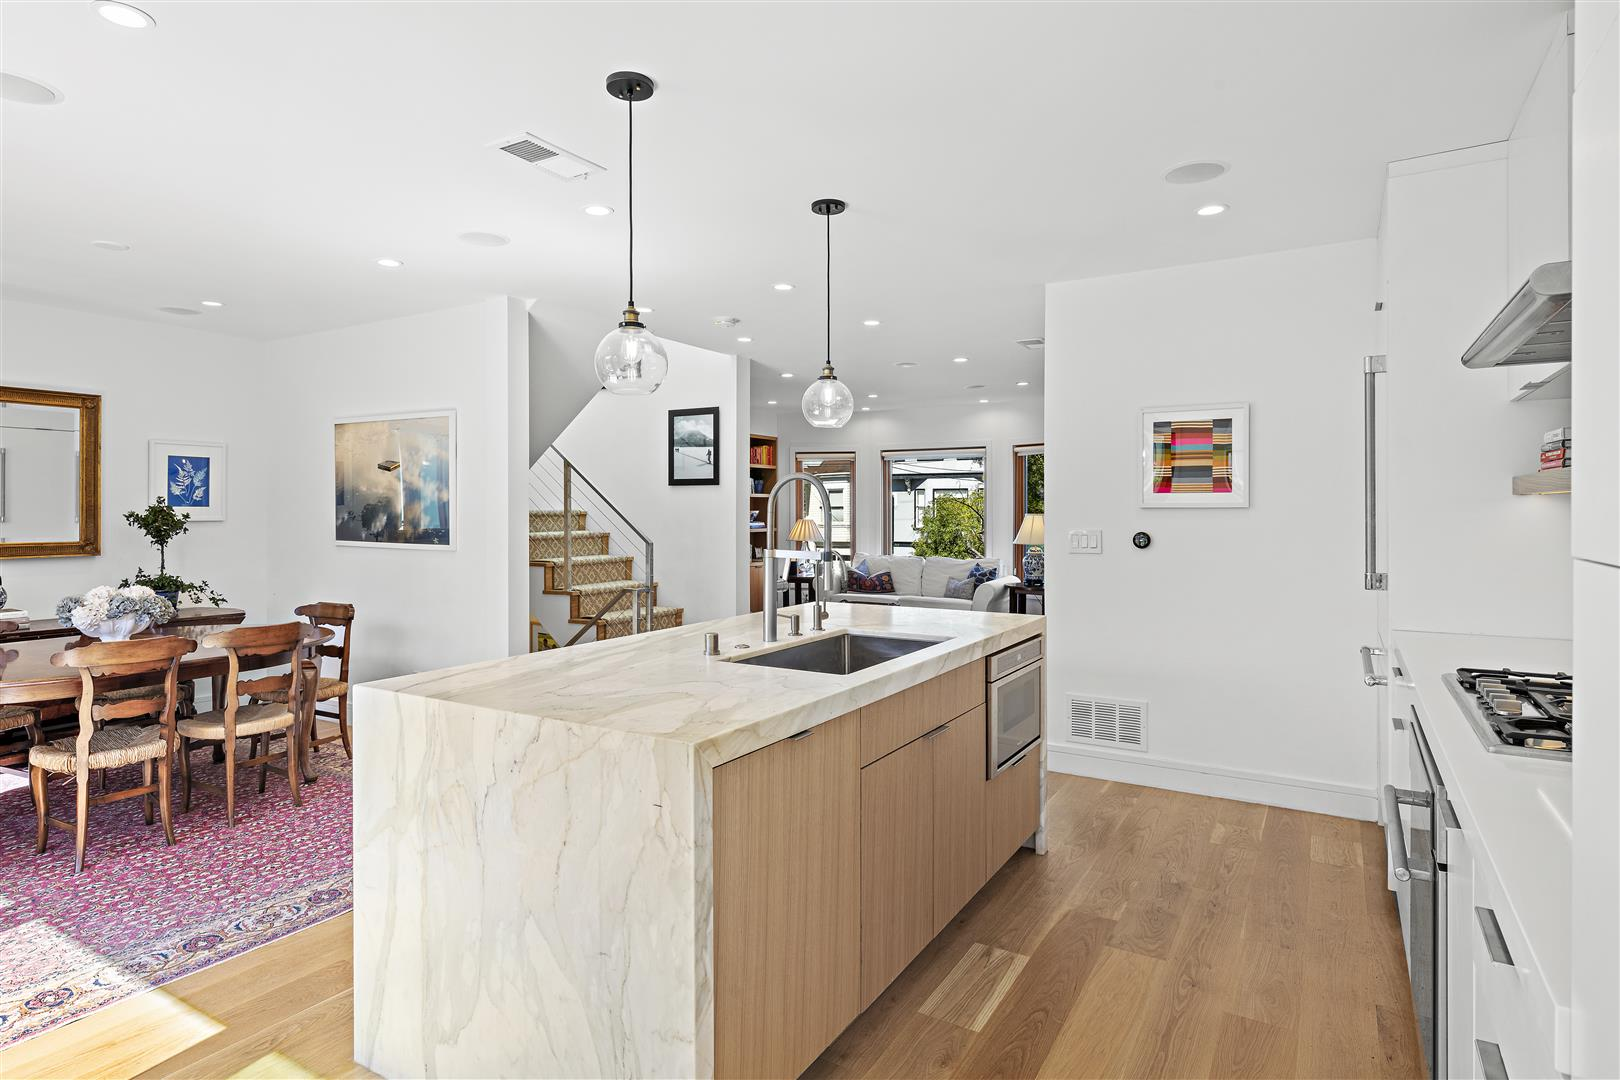 6-MLS-375-30th-Ave-San-Francisco25.jpg #7